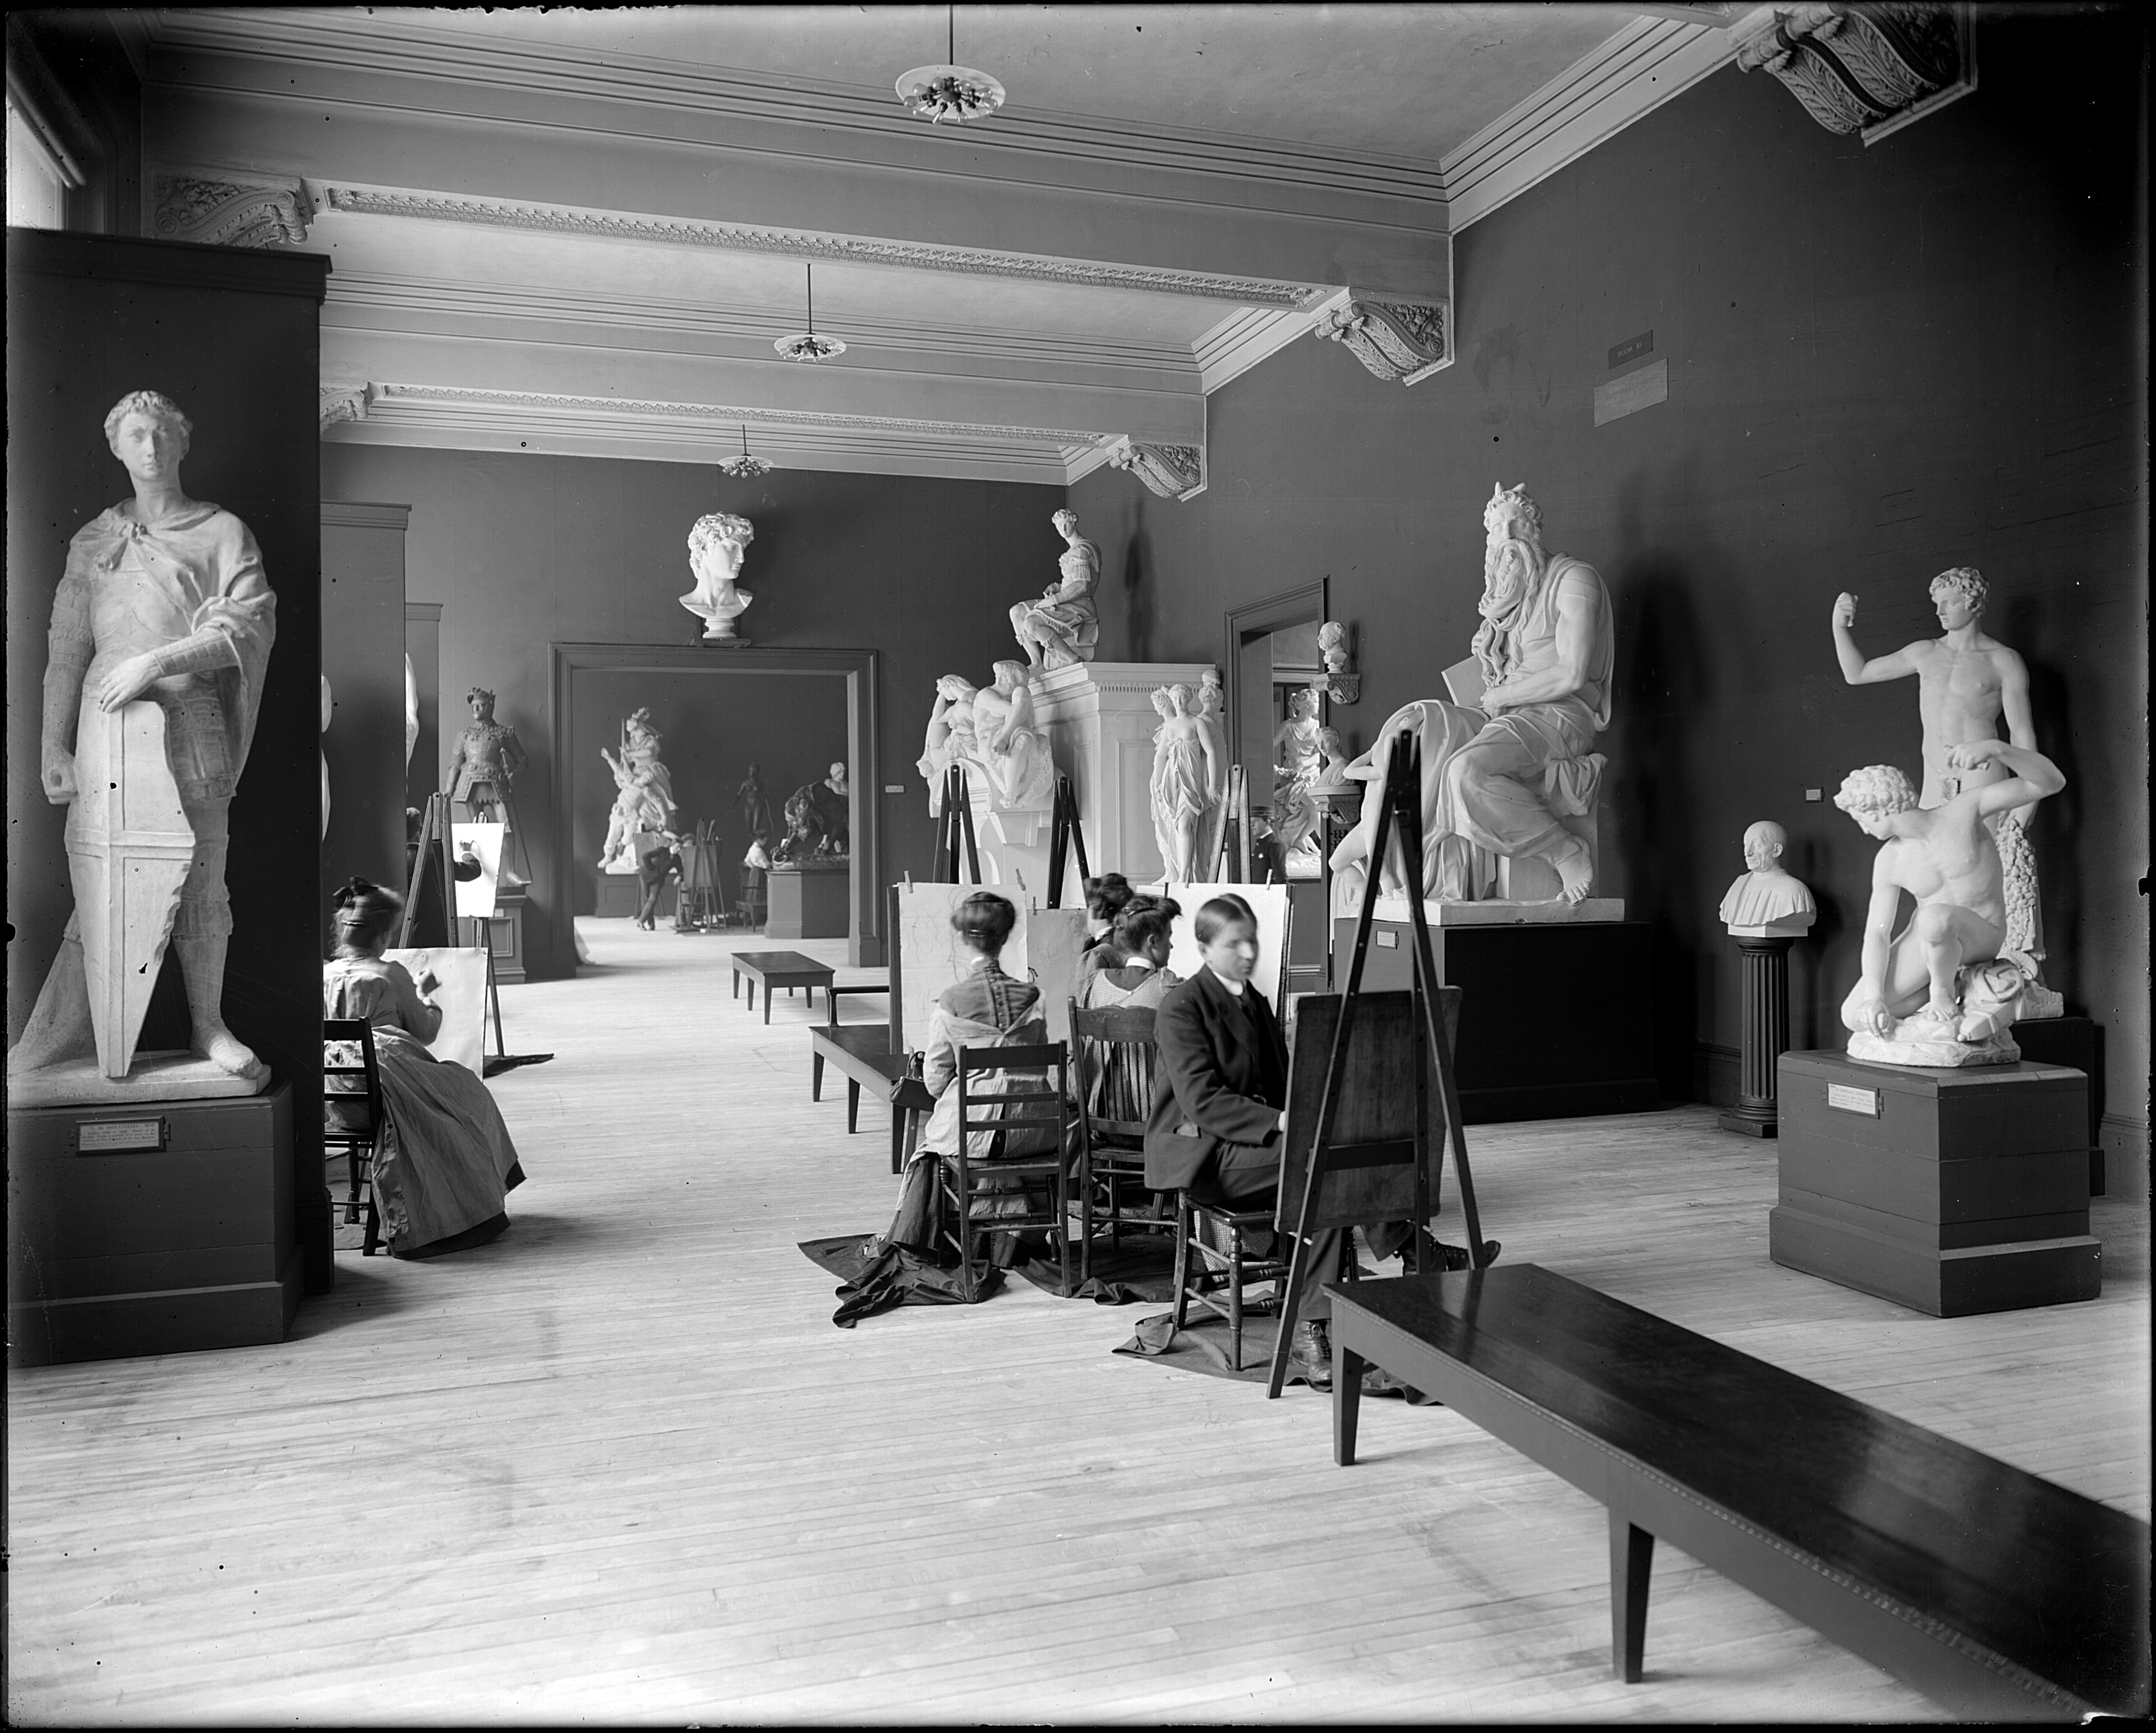 Early photograph of people painting in the galleries amidst plaster replicas of classical and Renaissance scuilptures